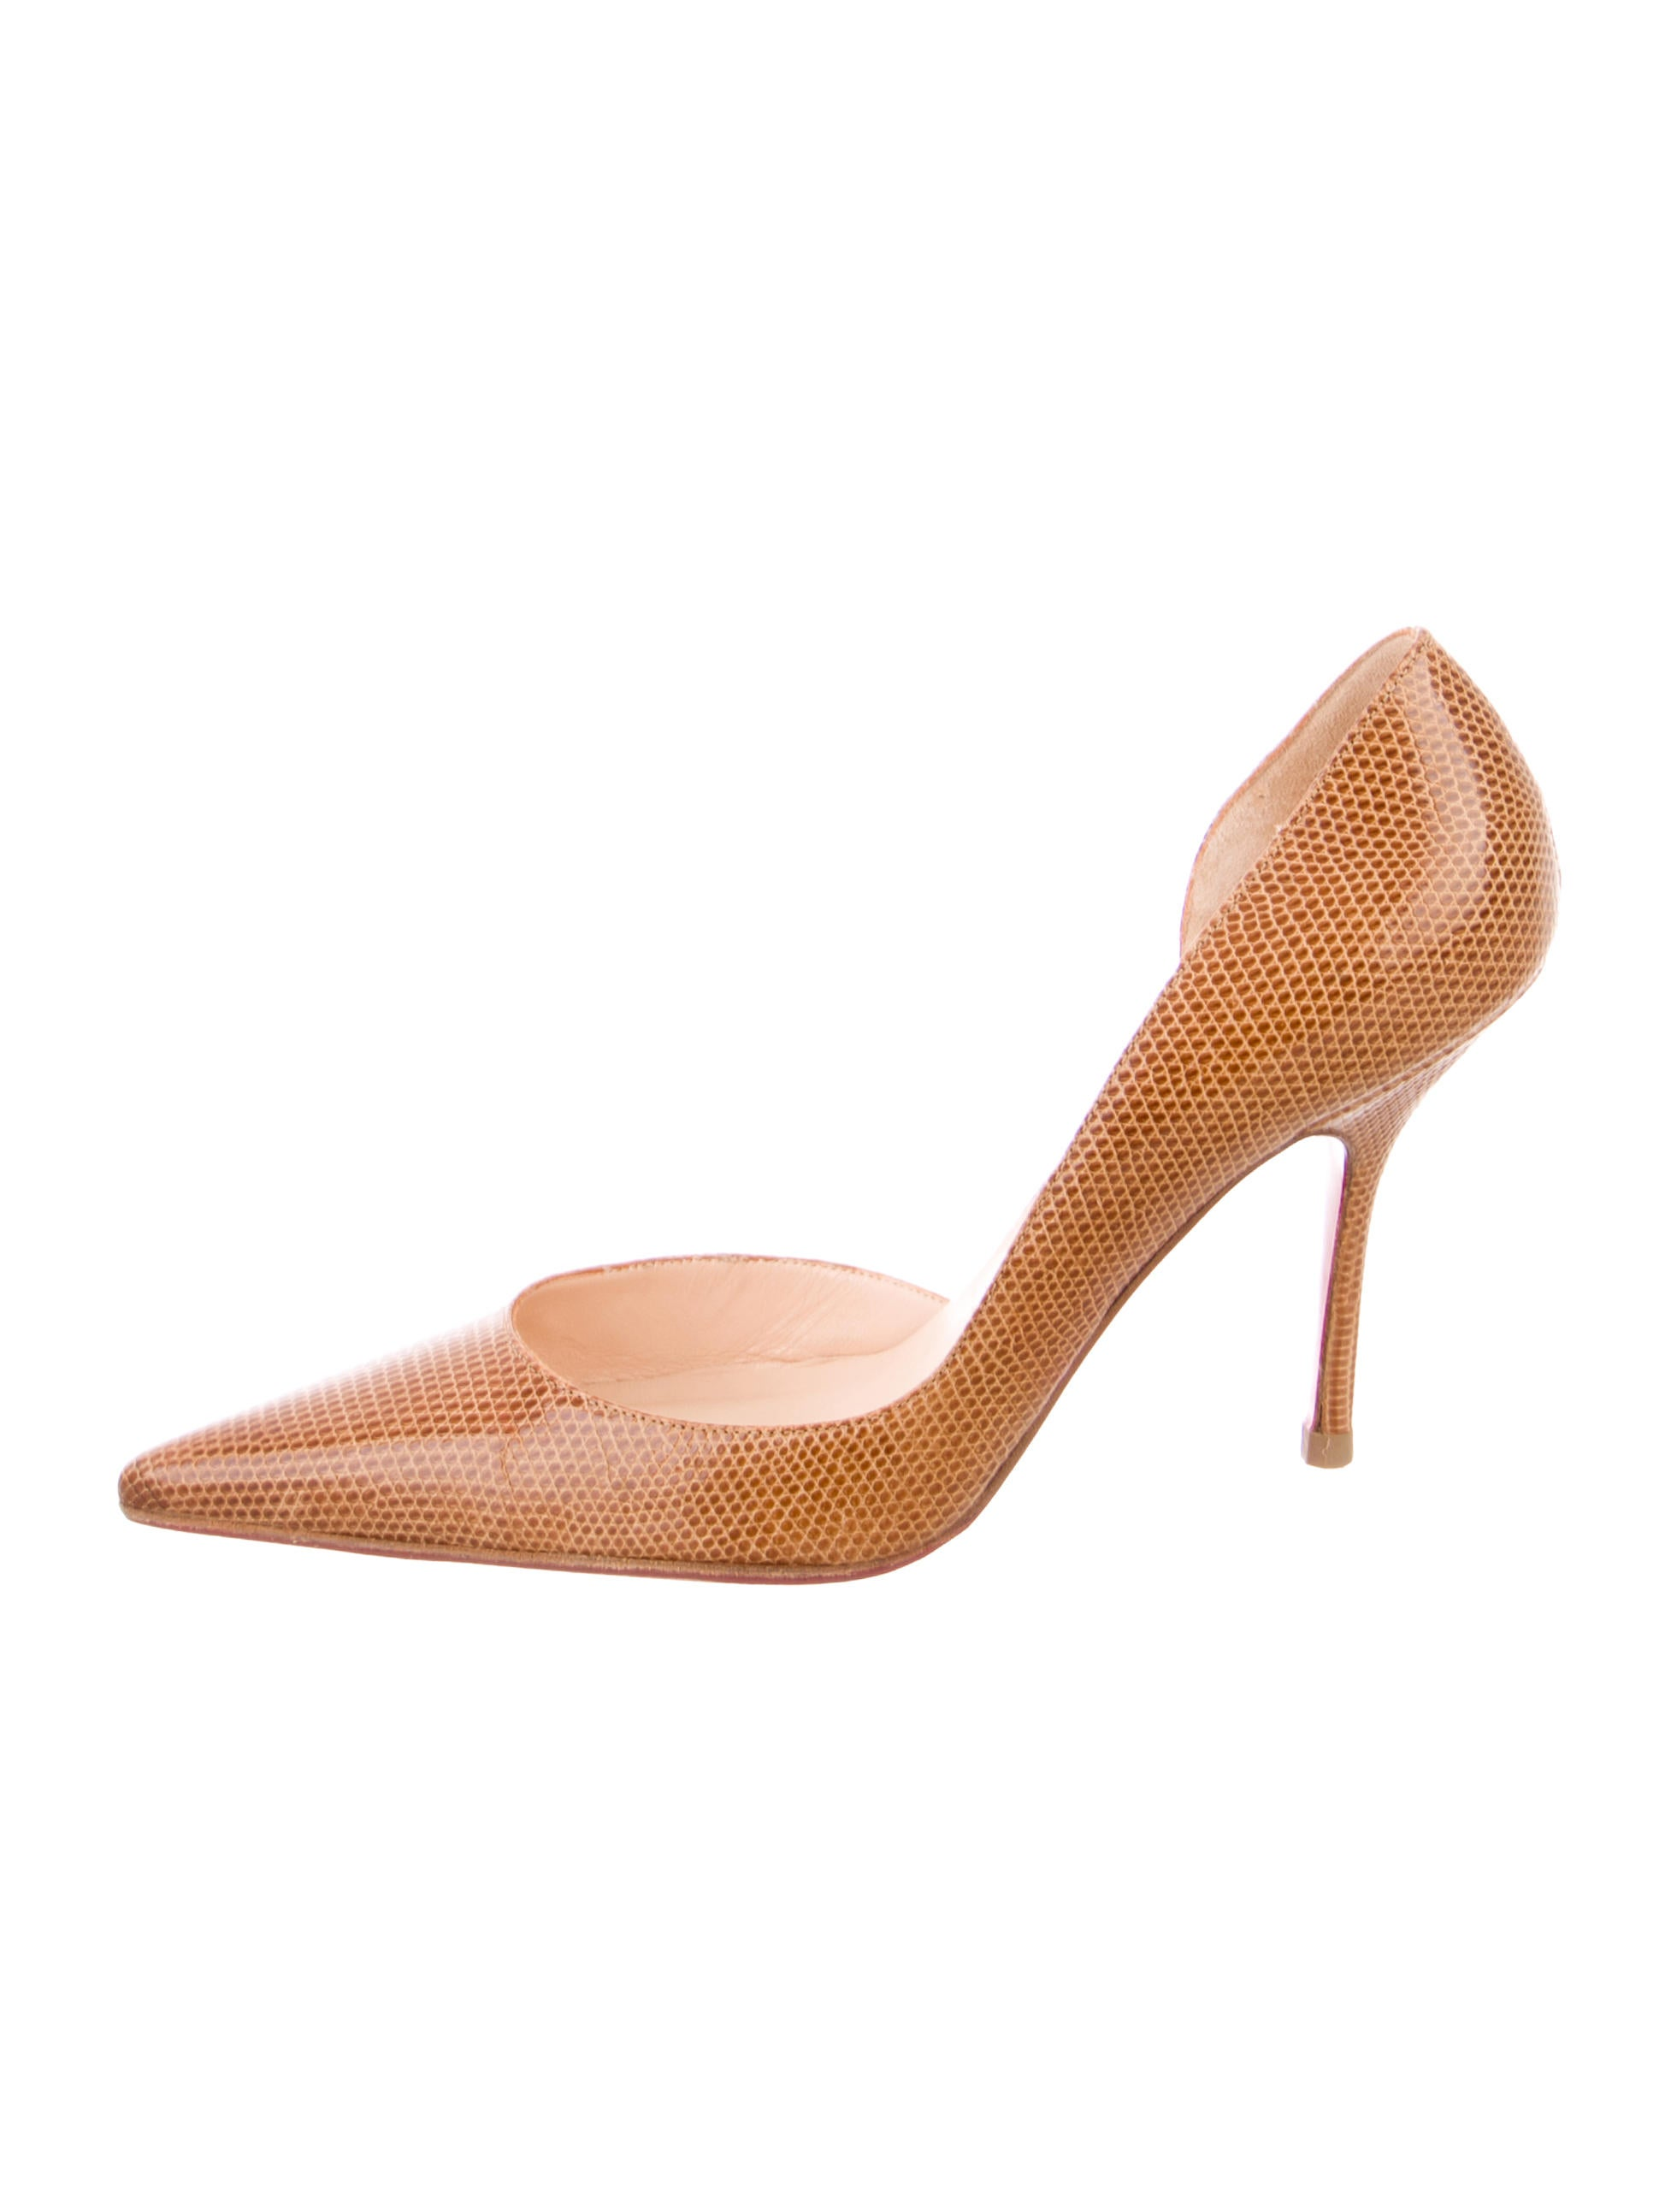 fa5428e8d Christian Louboutin Pumps | The RealReal